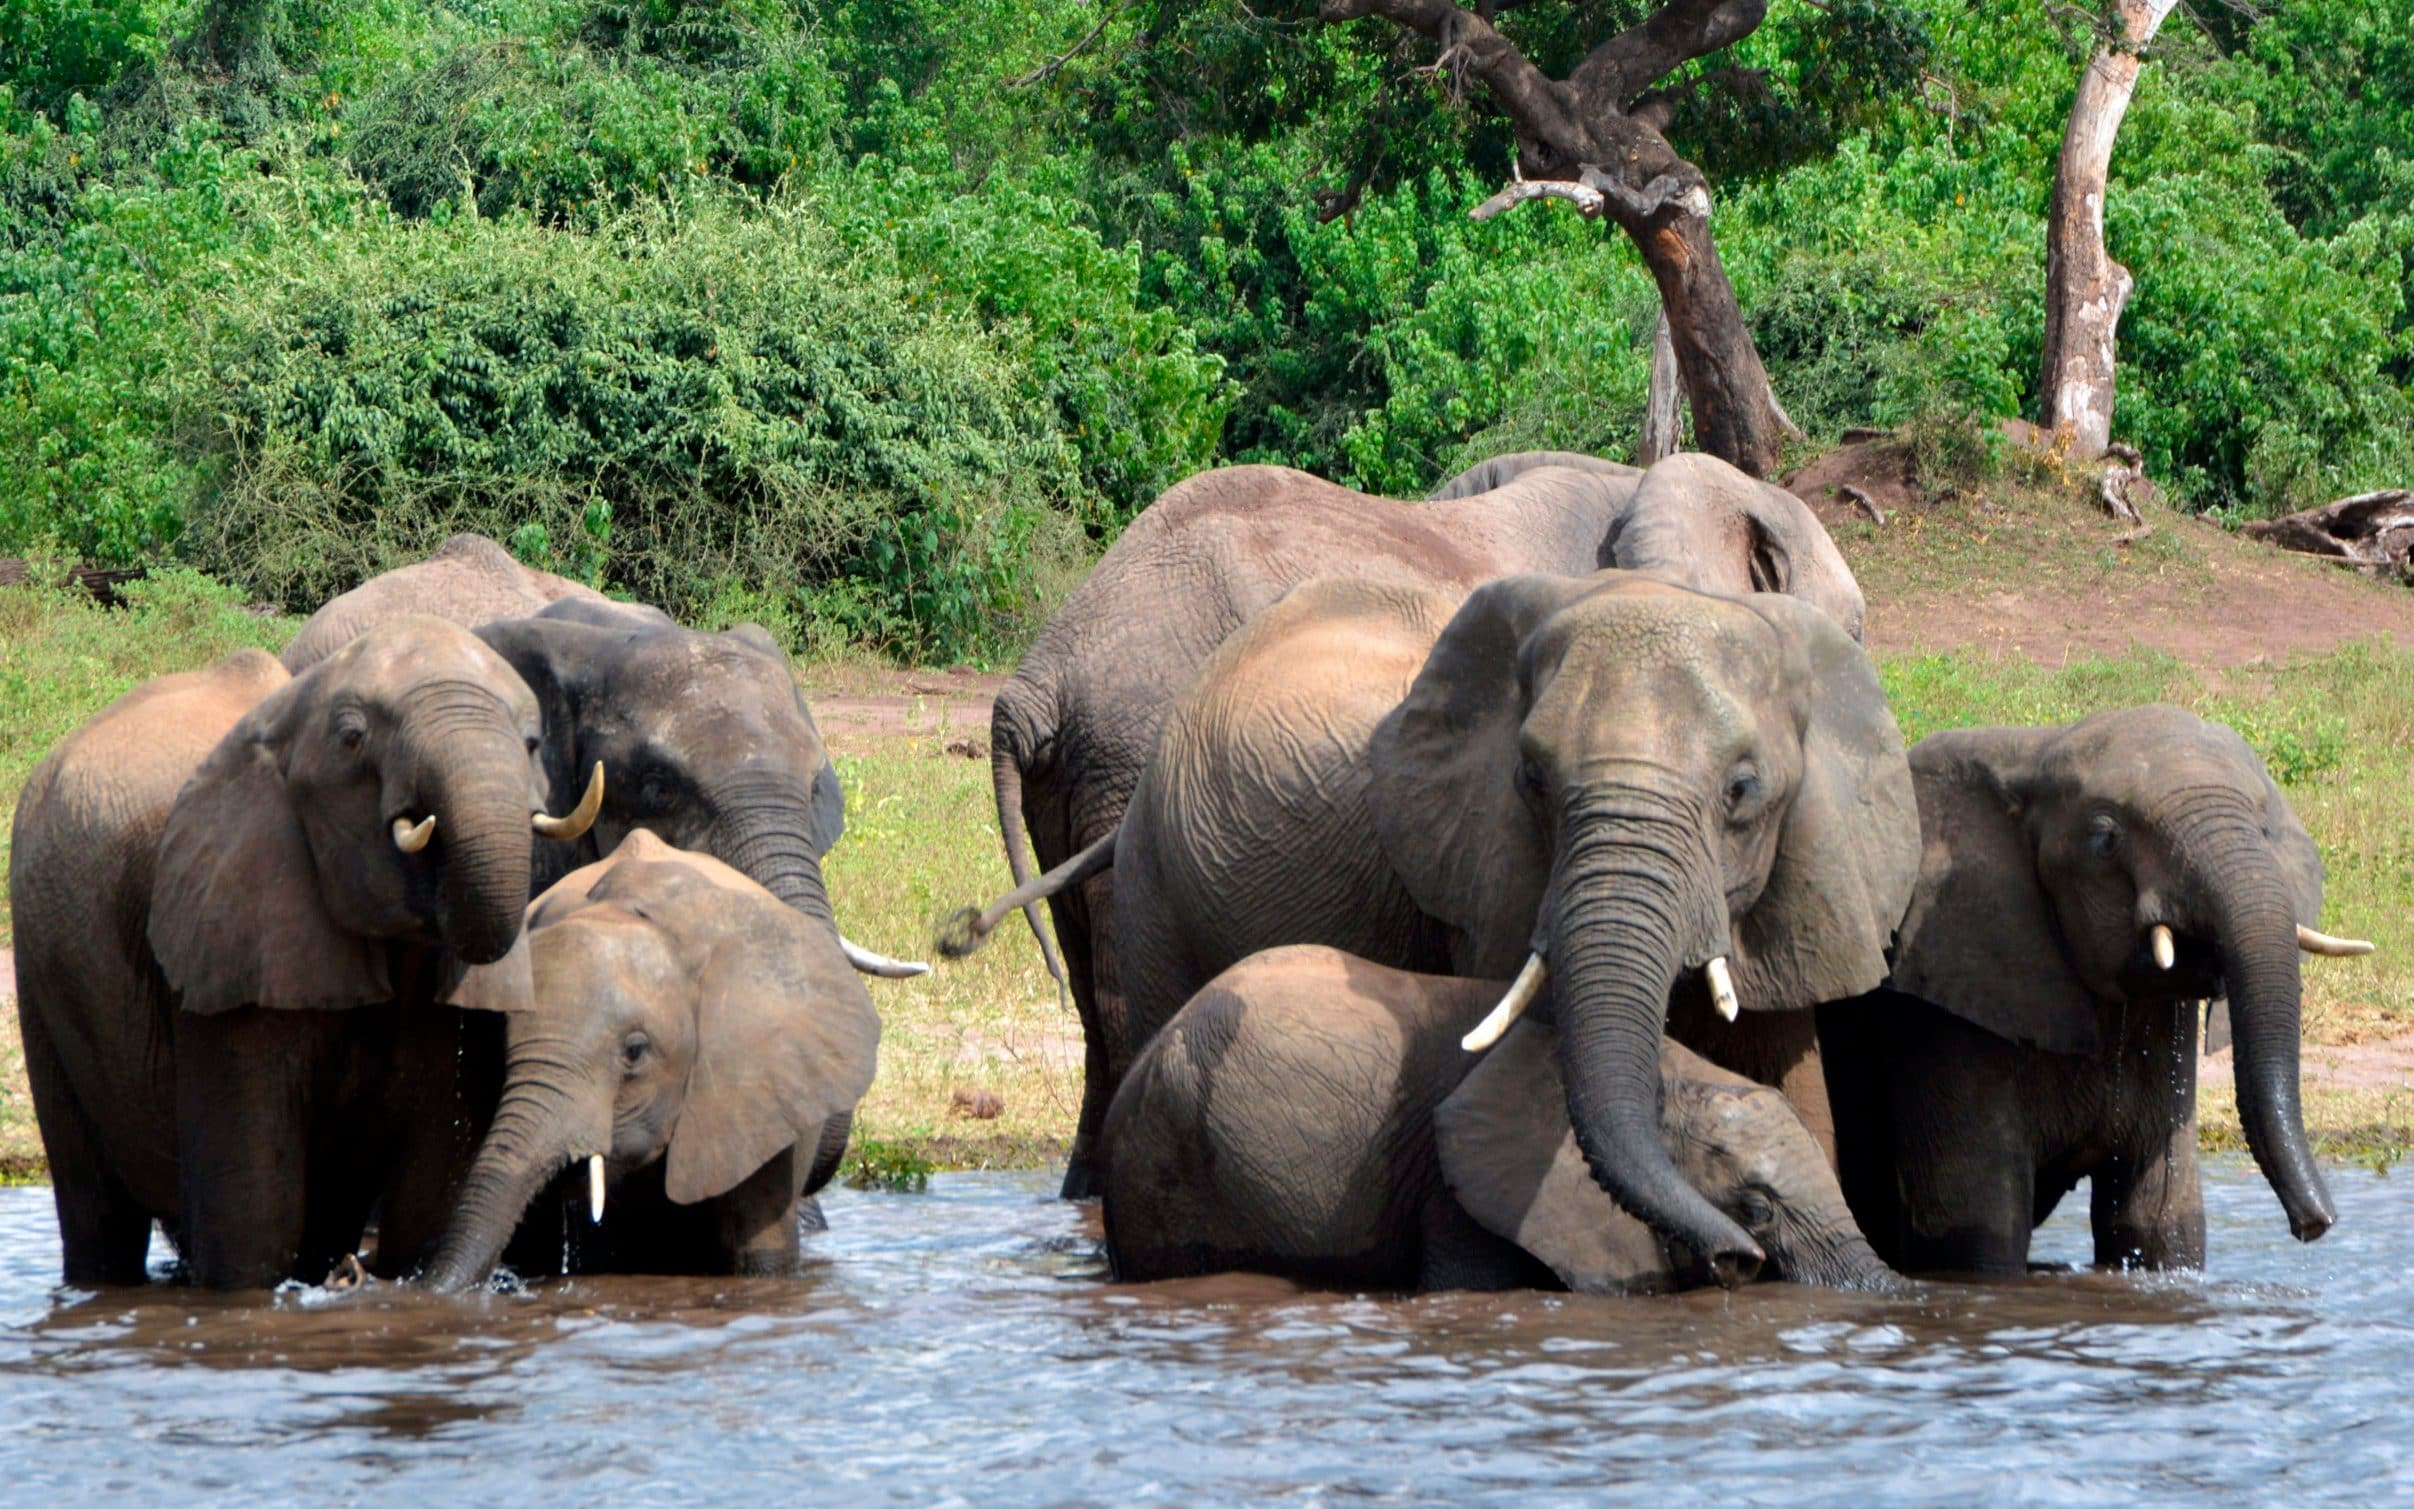 Elephants cool off in Botswana's Chobe national park, part of the vast KOZA eco-system that includes southeast Angola